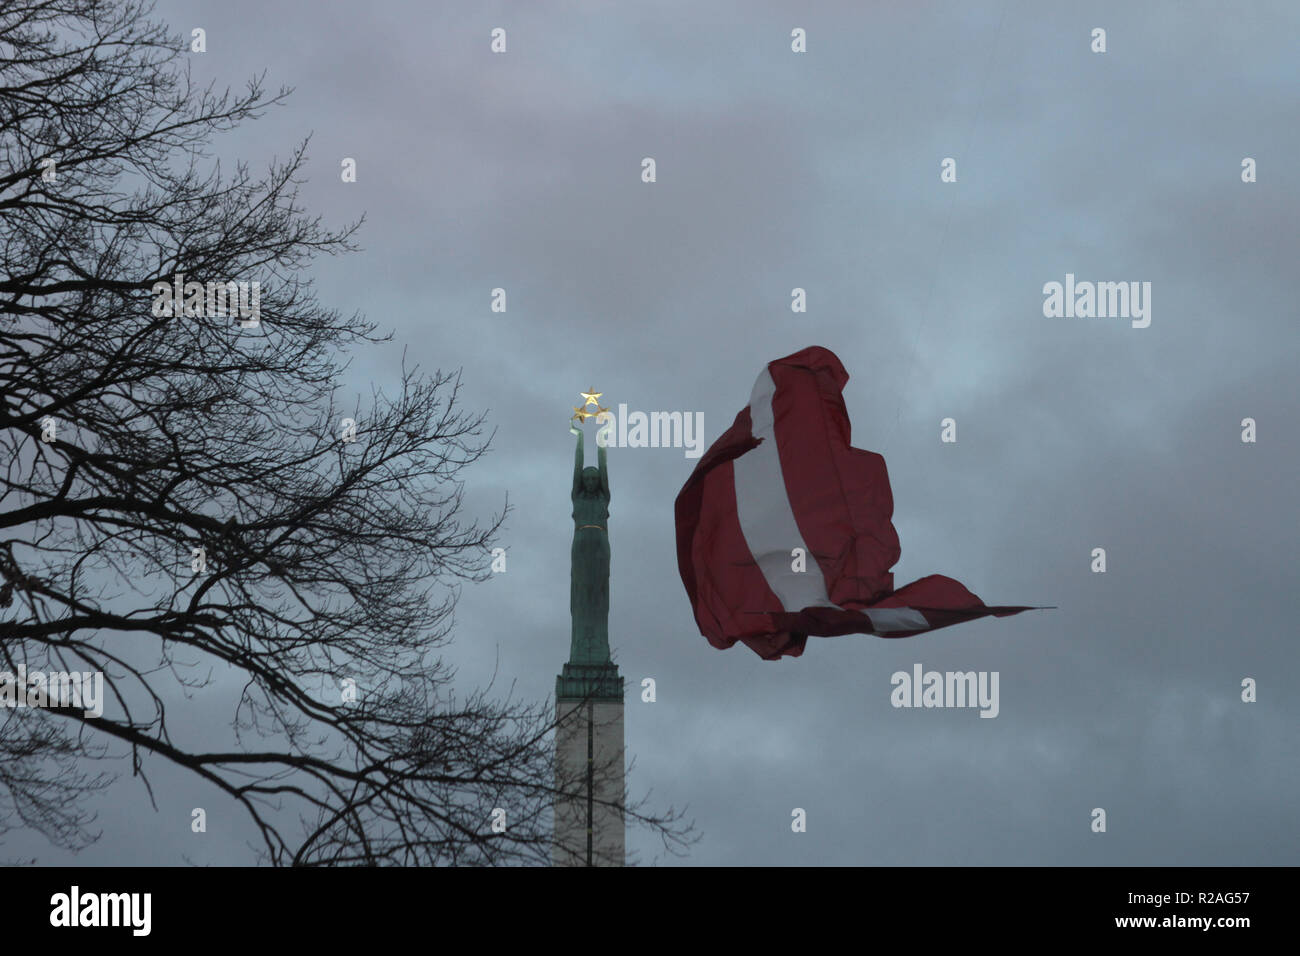 Riga, Latvia. 18th Nov, 2018. A Latvian flag is flying at the Freedom Monument. Latvia celebrates its 100th birthday with numerous events. Exactly a century ago - on 18 November 1918 - the Baltic State proclaimed its independence from Russia. Credit: Alexander Welscher/dpa/Alamy Live News - Stock Image